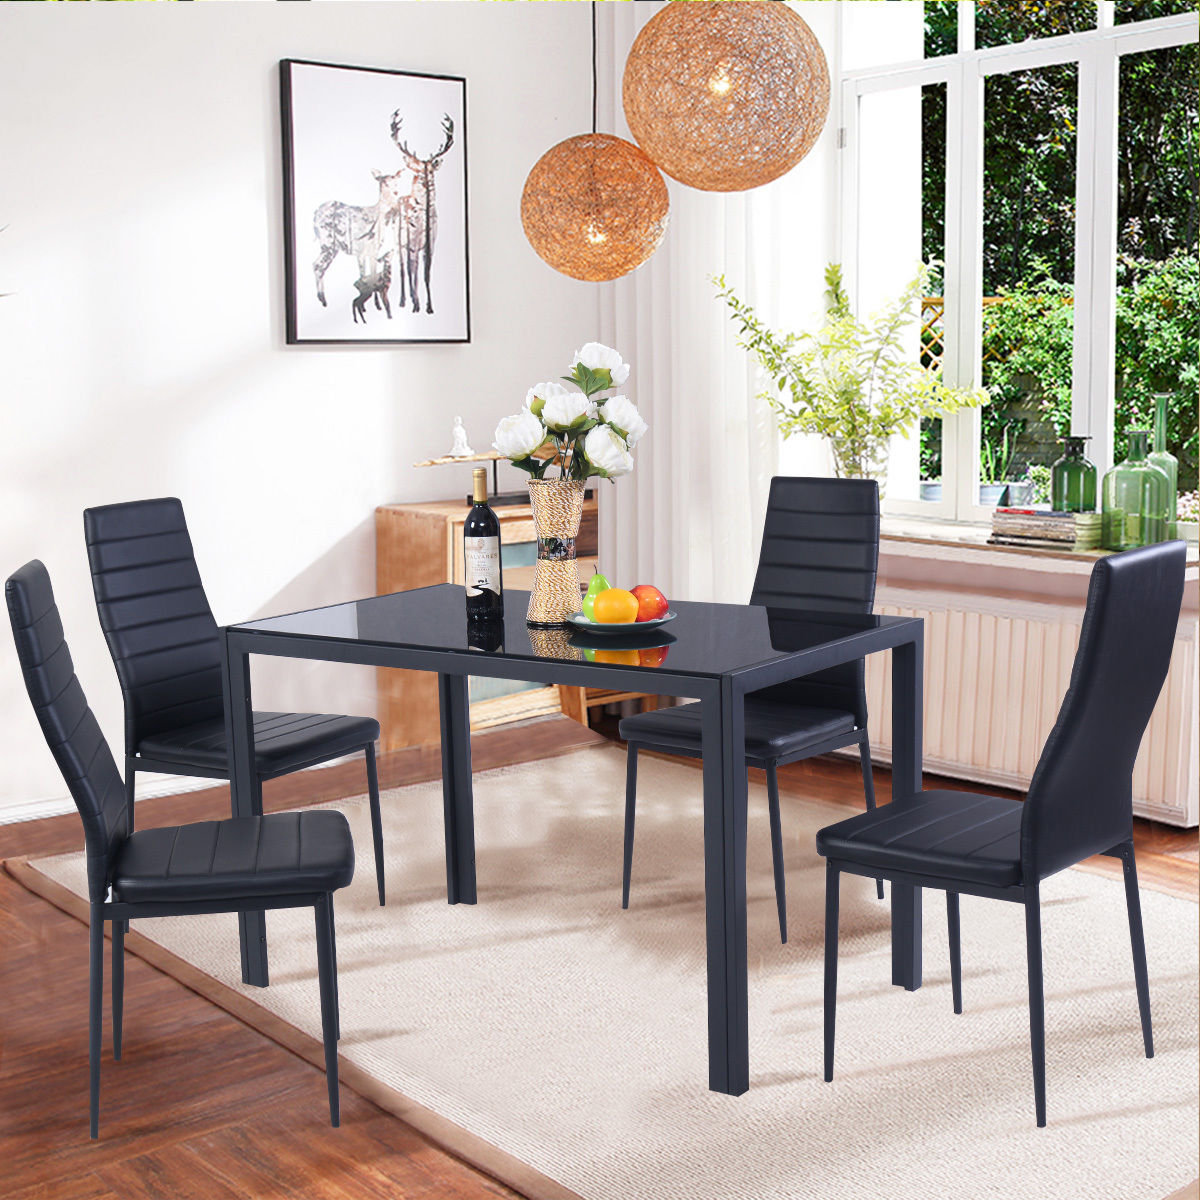 4 Chair Dining Sets costway 5 piece kitchen dining set glass metal table and 4 chairs